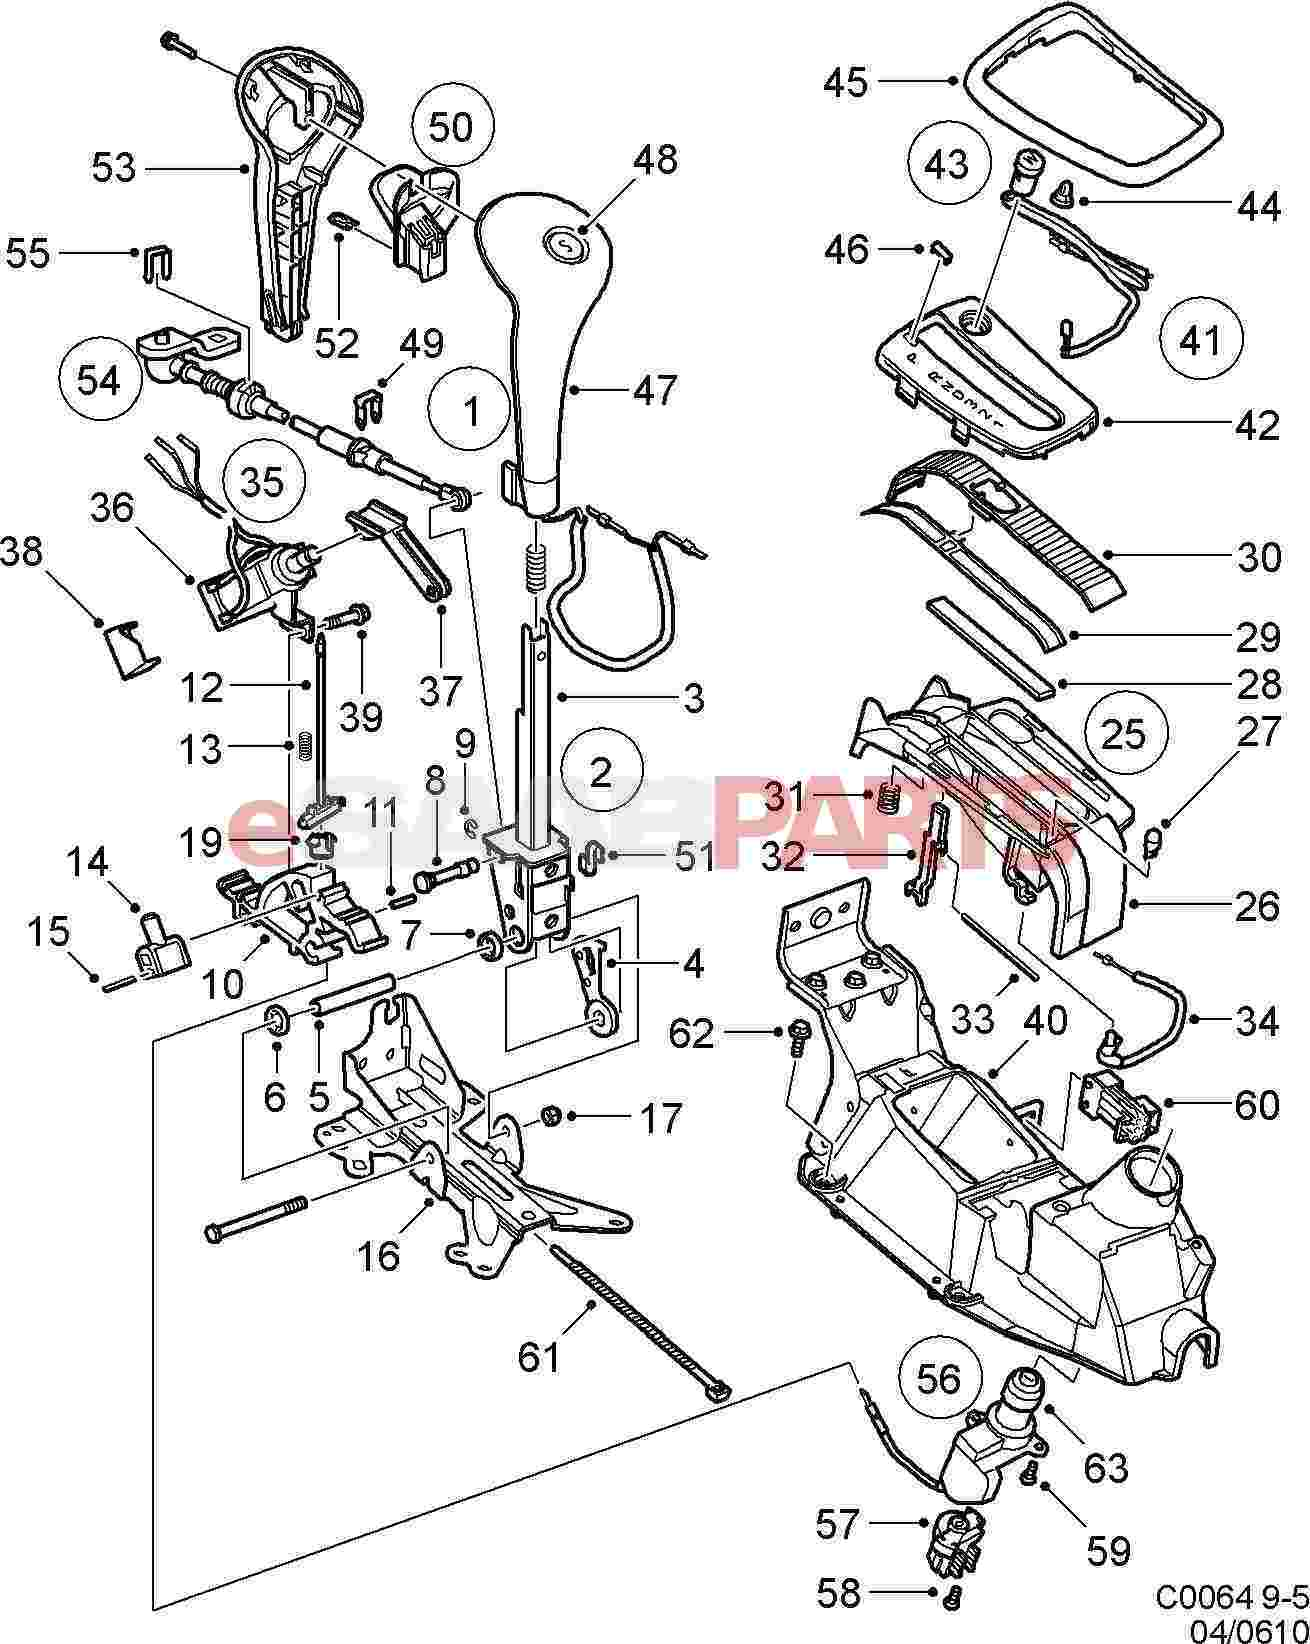 [DIAGRAM] Renault Clio Gearbox Diagram FULL Version HD